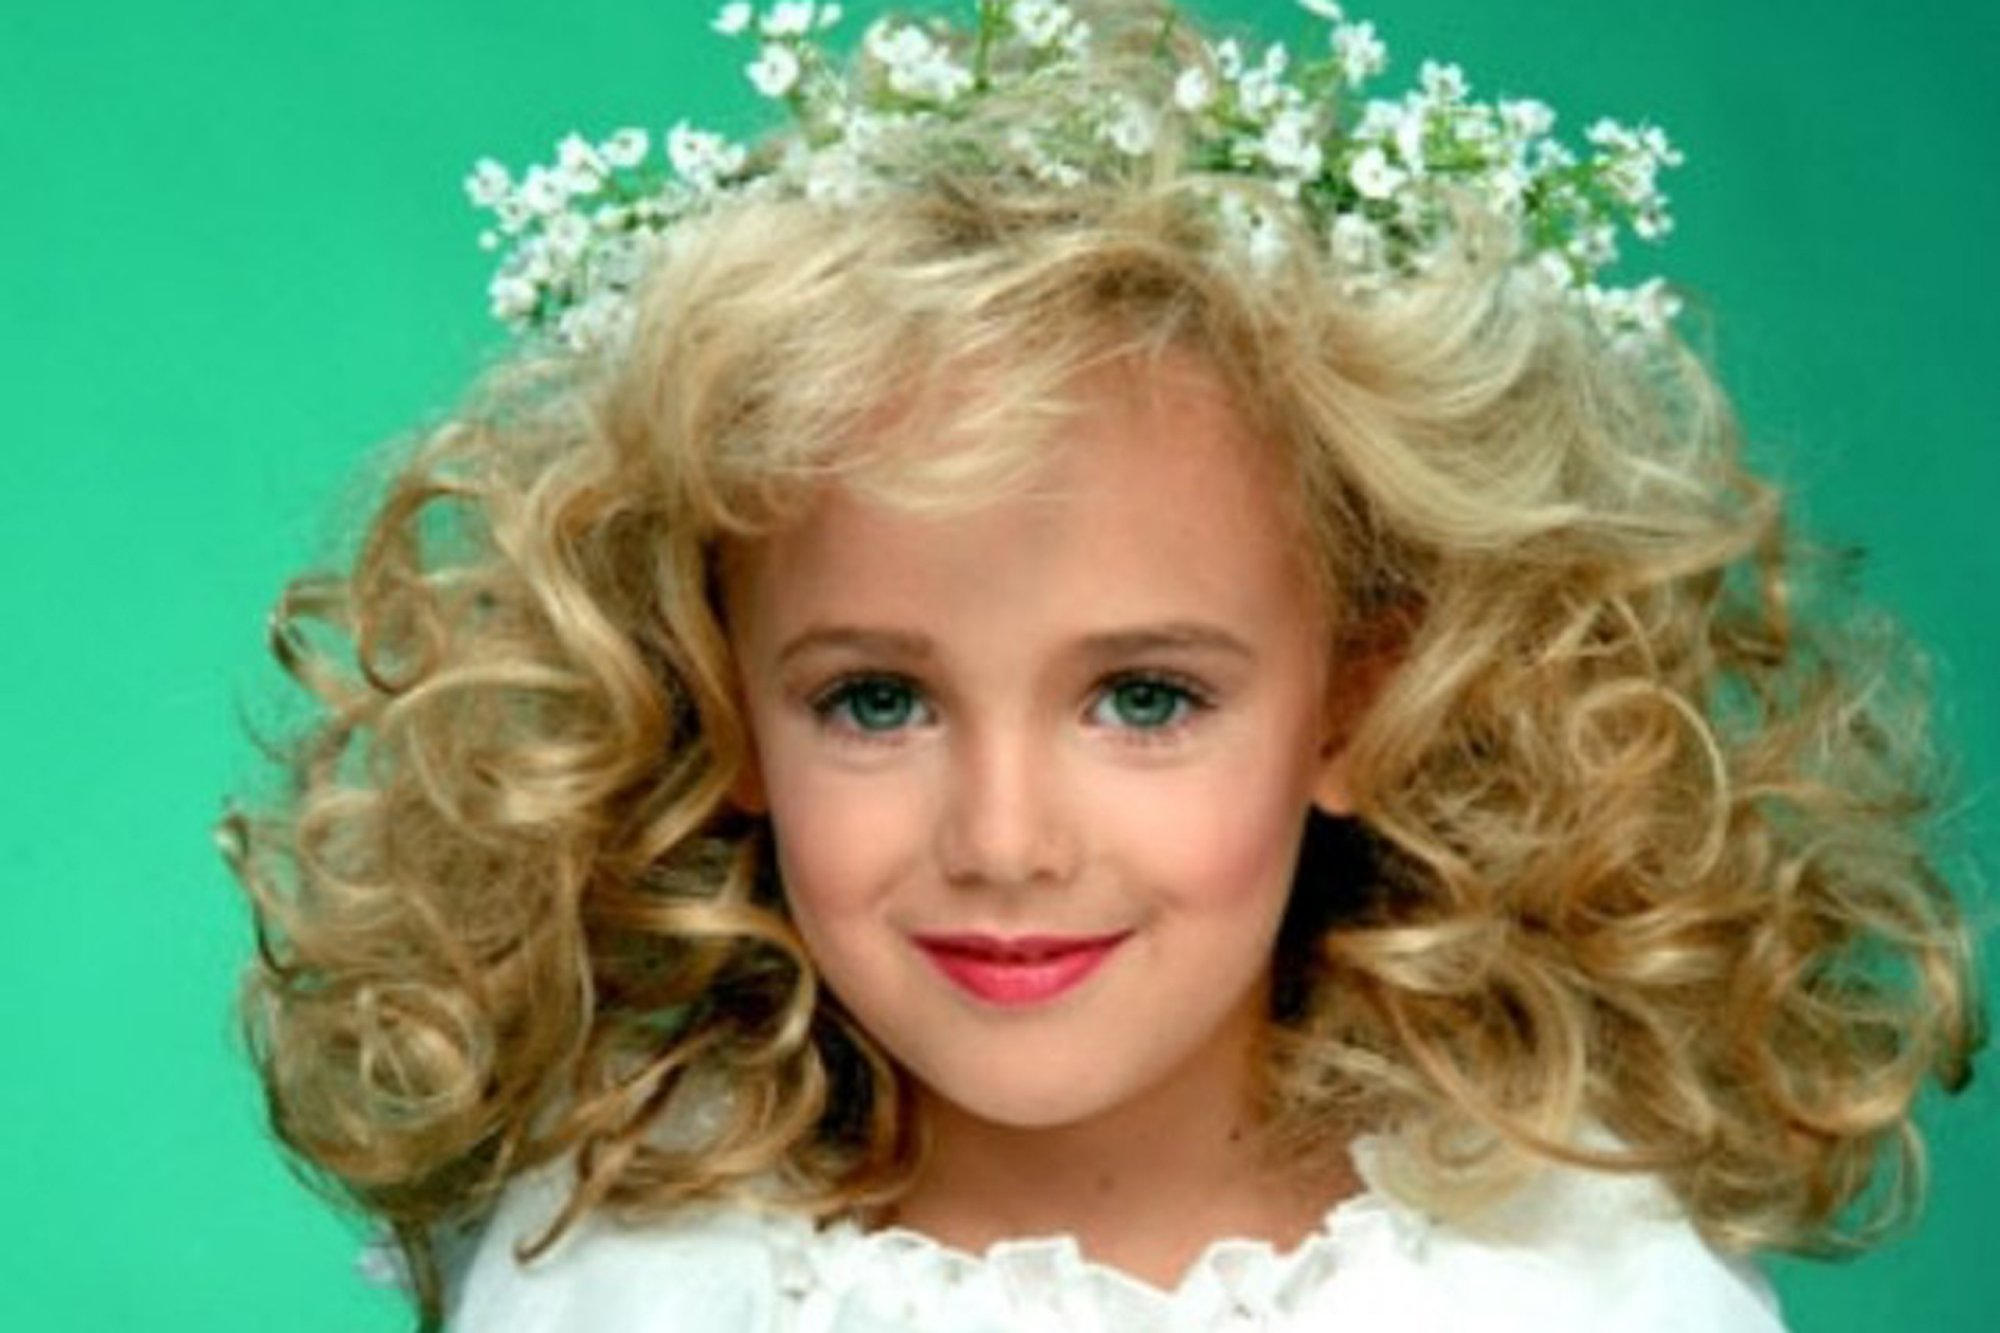 'The Case Of: JonBenet Ramsey' Trailer Is Truly Haunting